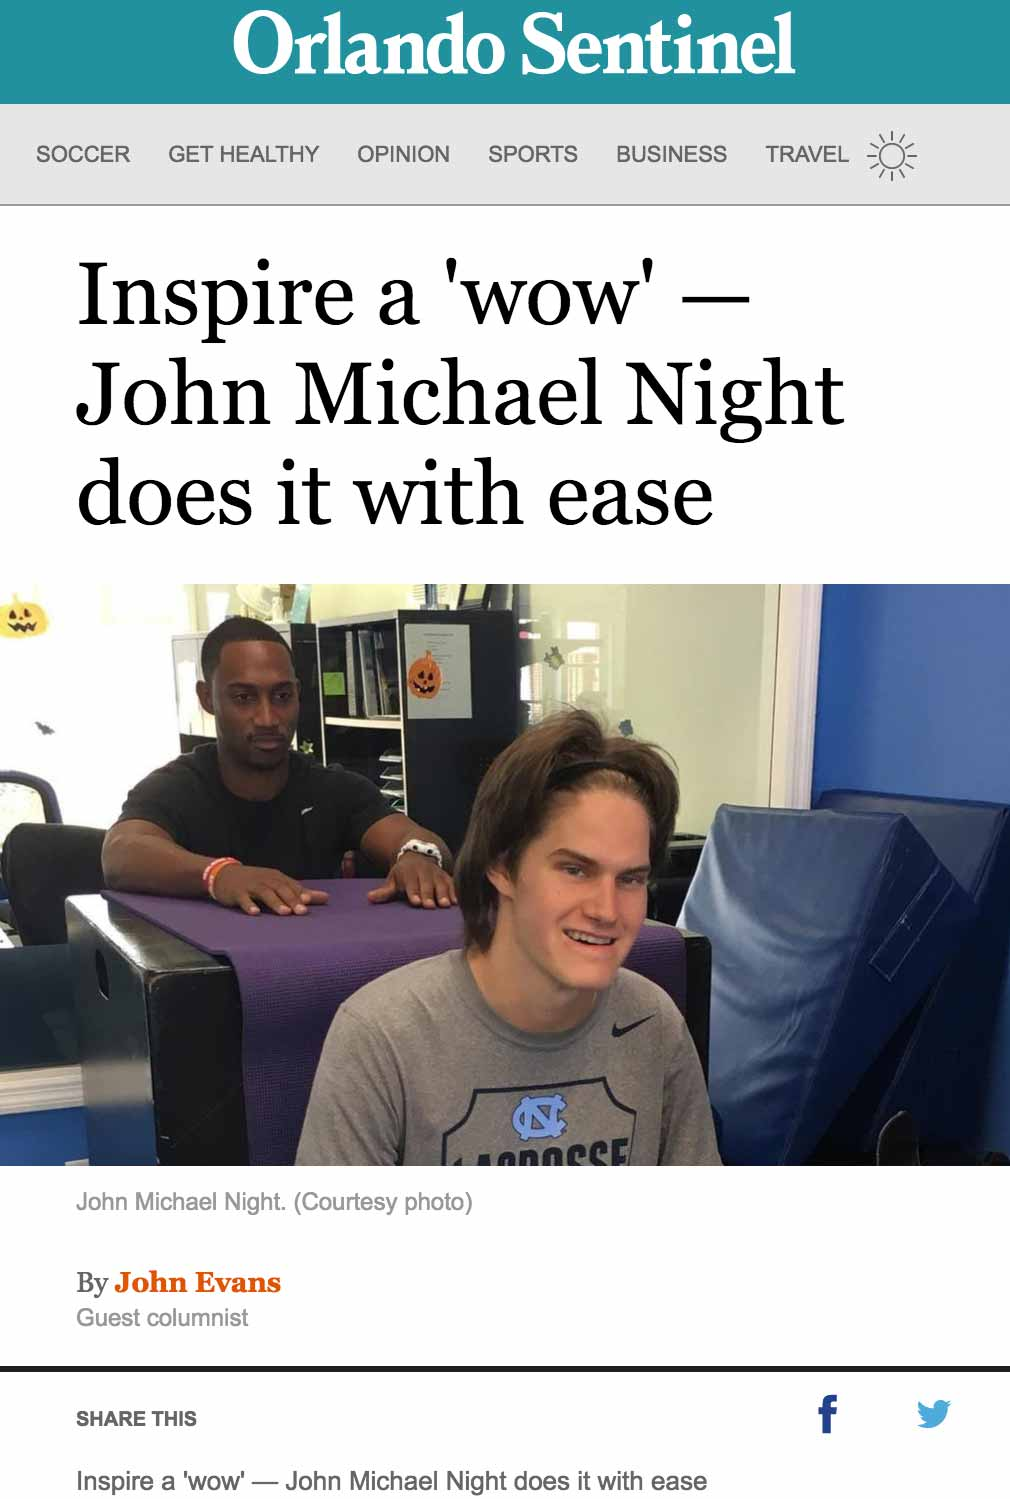 image, inspire a wow, john michael knight does it with ease